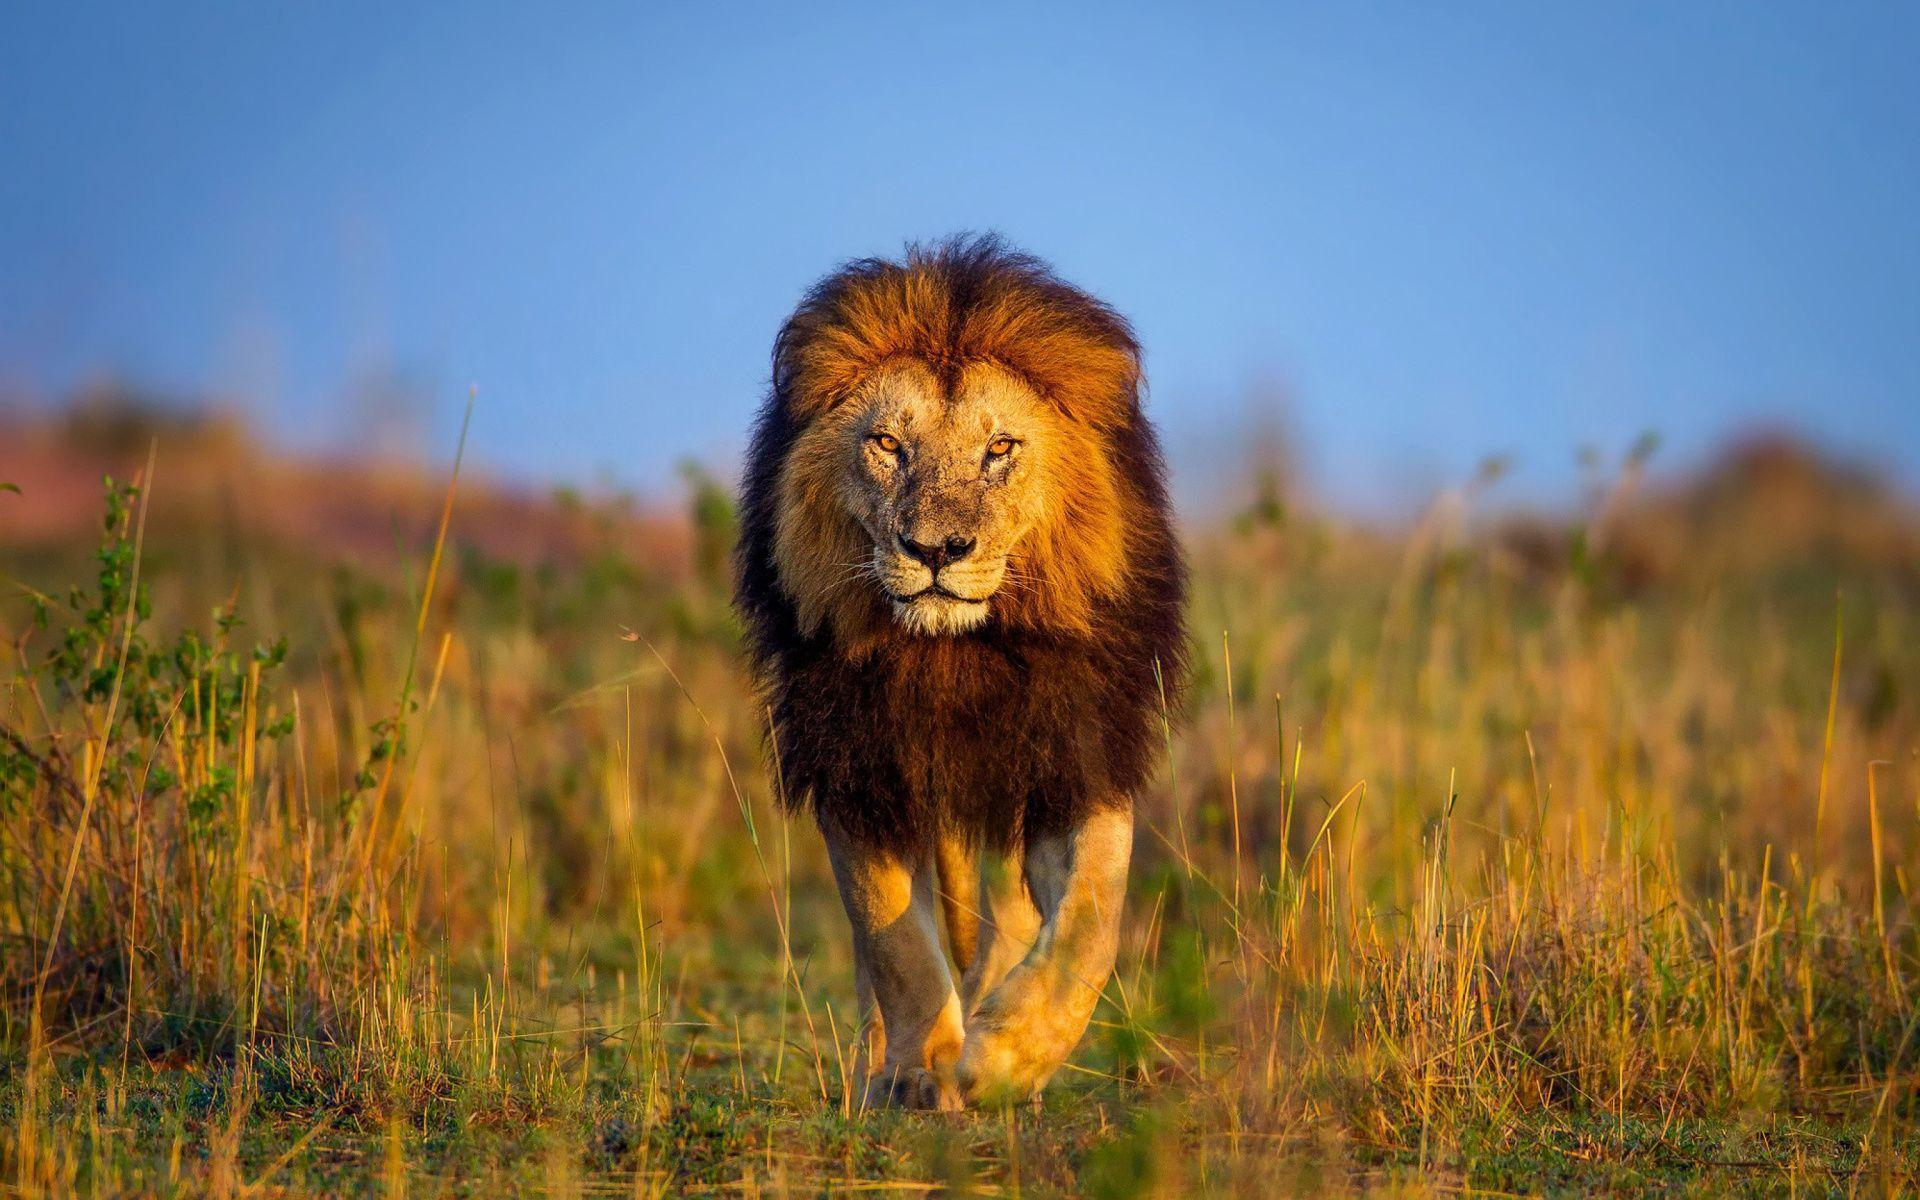 Lion Animal Wallpapers Wallpaper Cave Images, Photos, Reviews